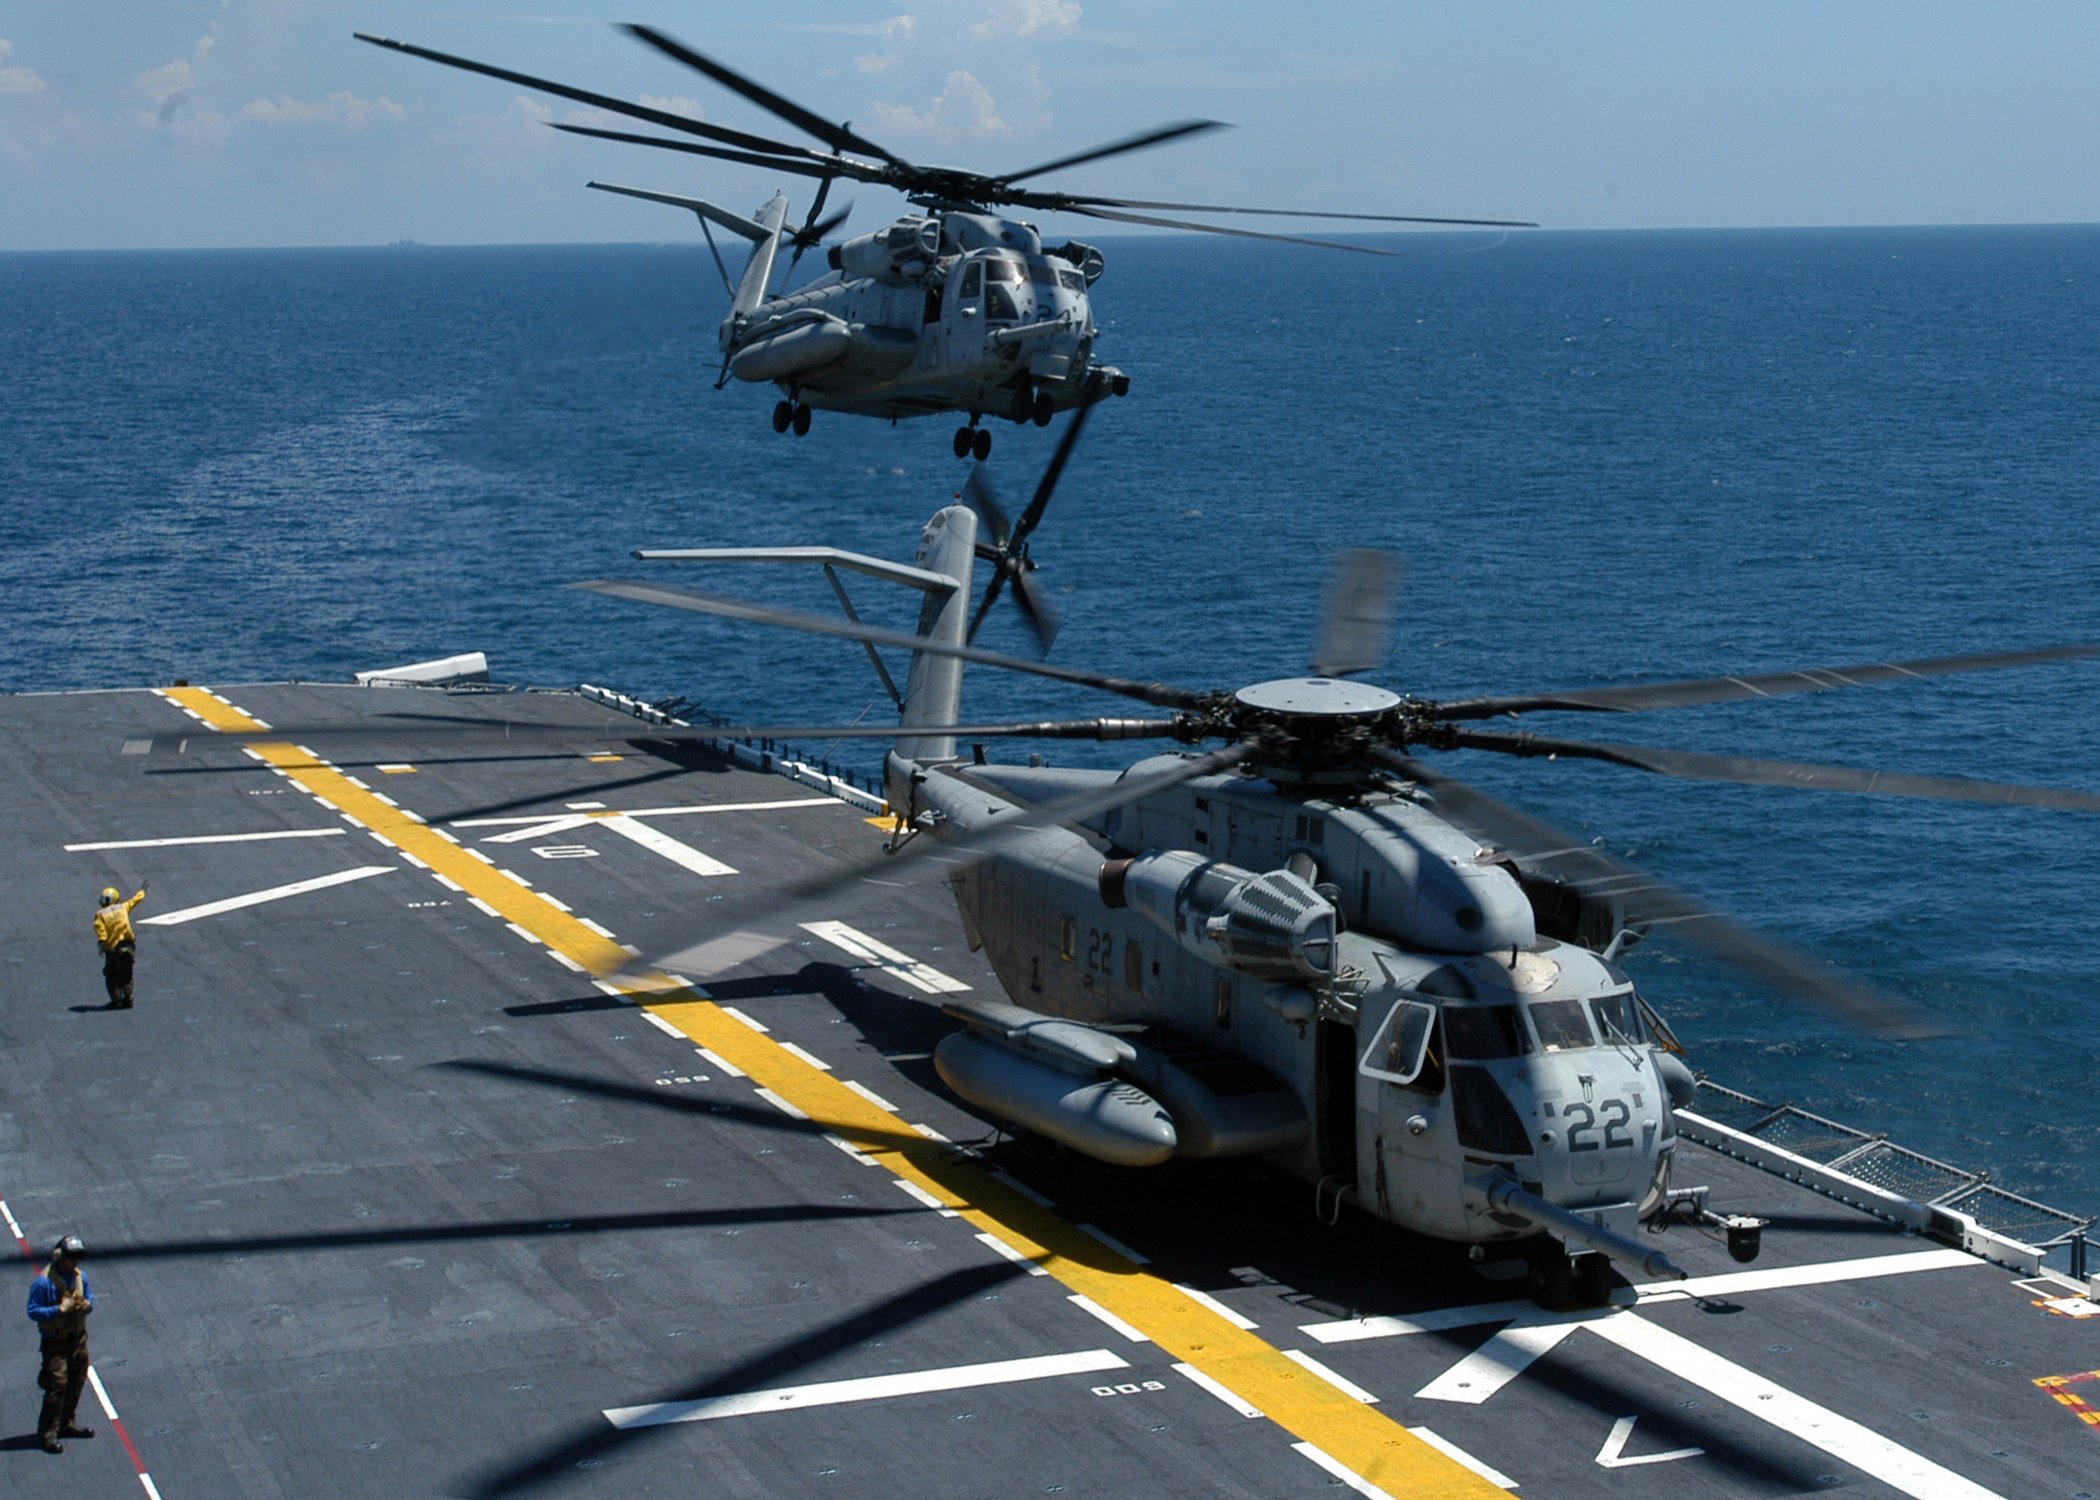 CH-53E Super Stallion helicopter military marines (38)